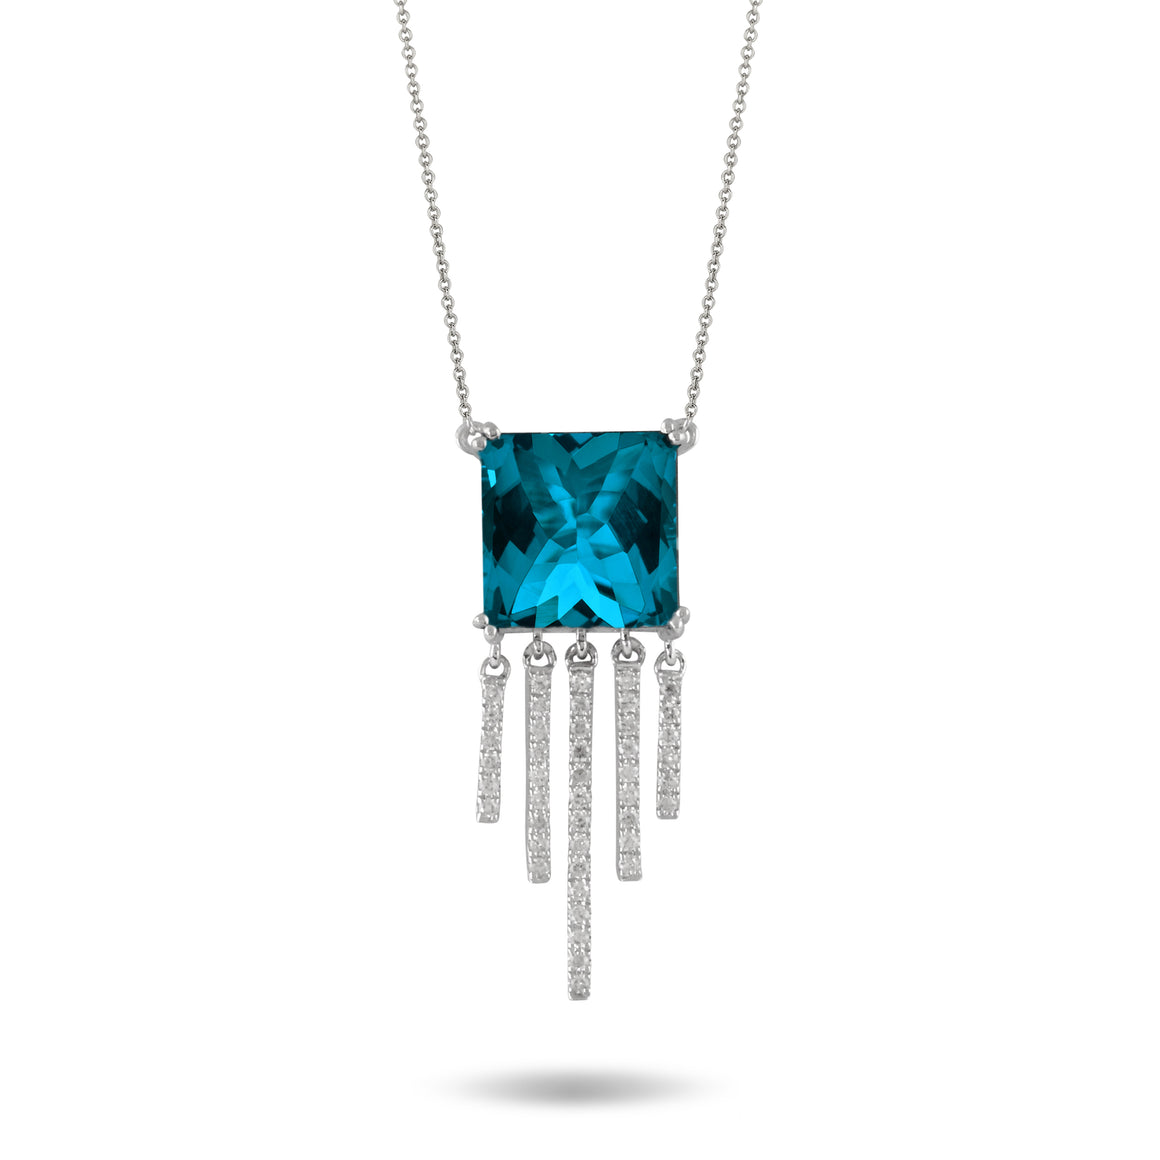 London Blue Topaz and Diamond Fringe Necklace by Doves - Talisman Collection Fine Jewelers